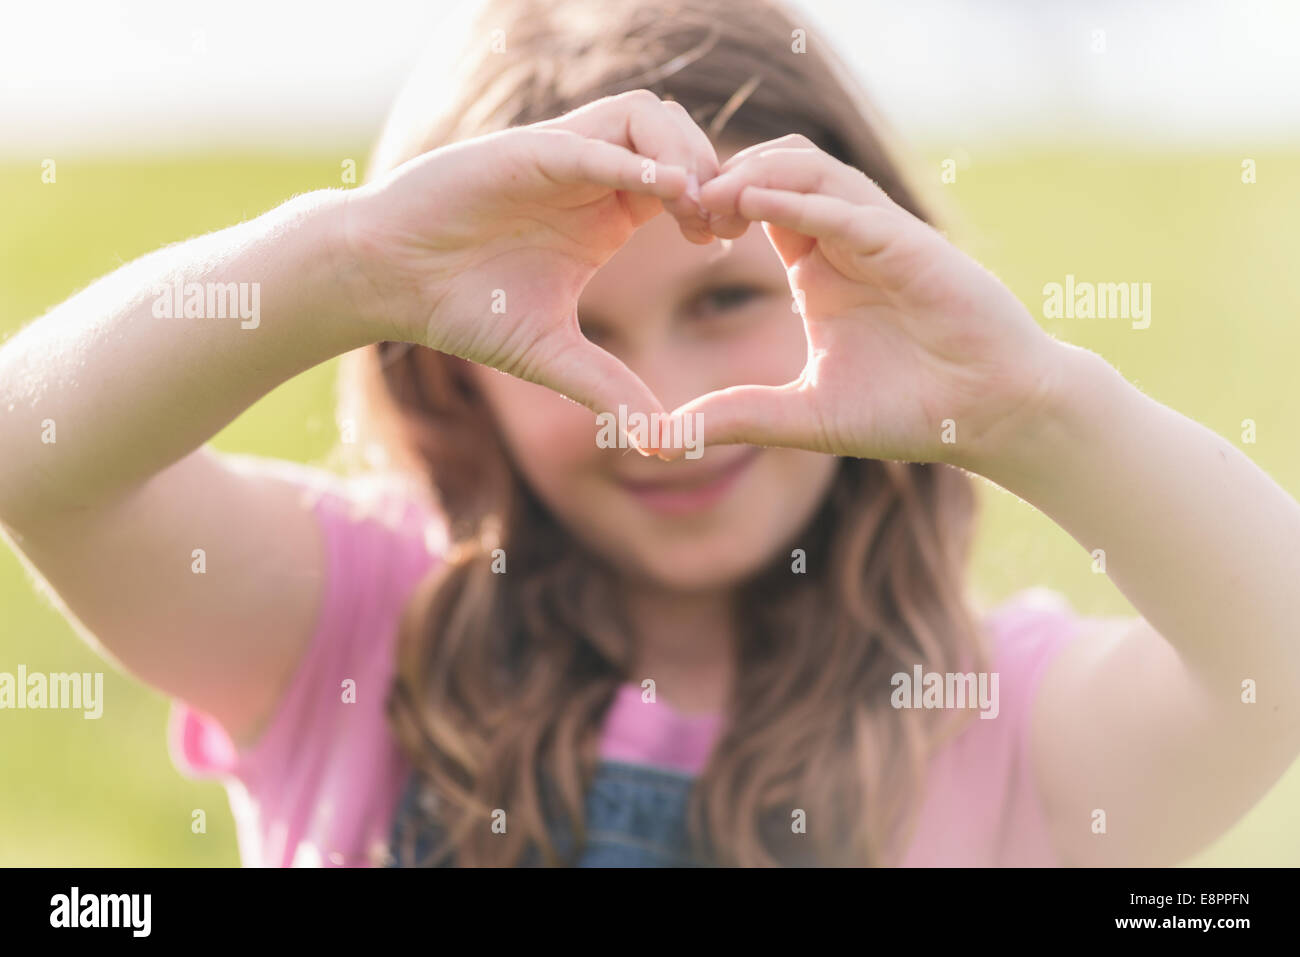 girl making a heart shape with her hands Stock Photo: 74259353 - Alamy